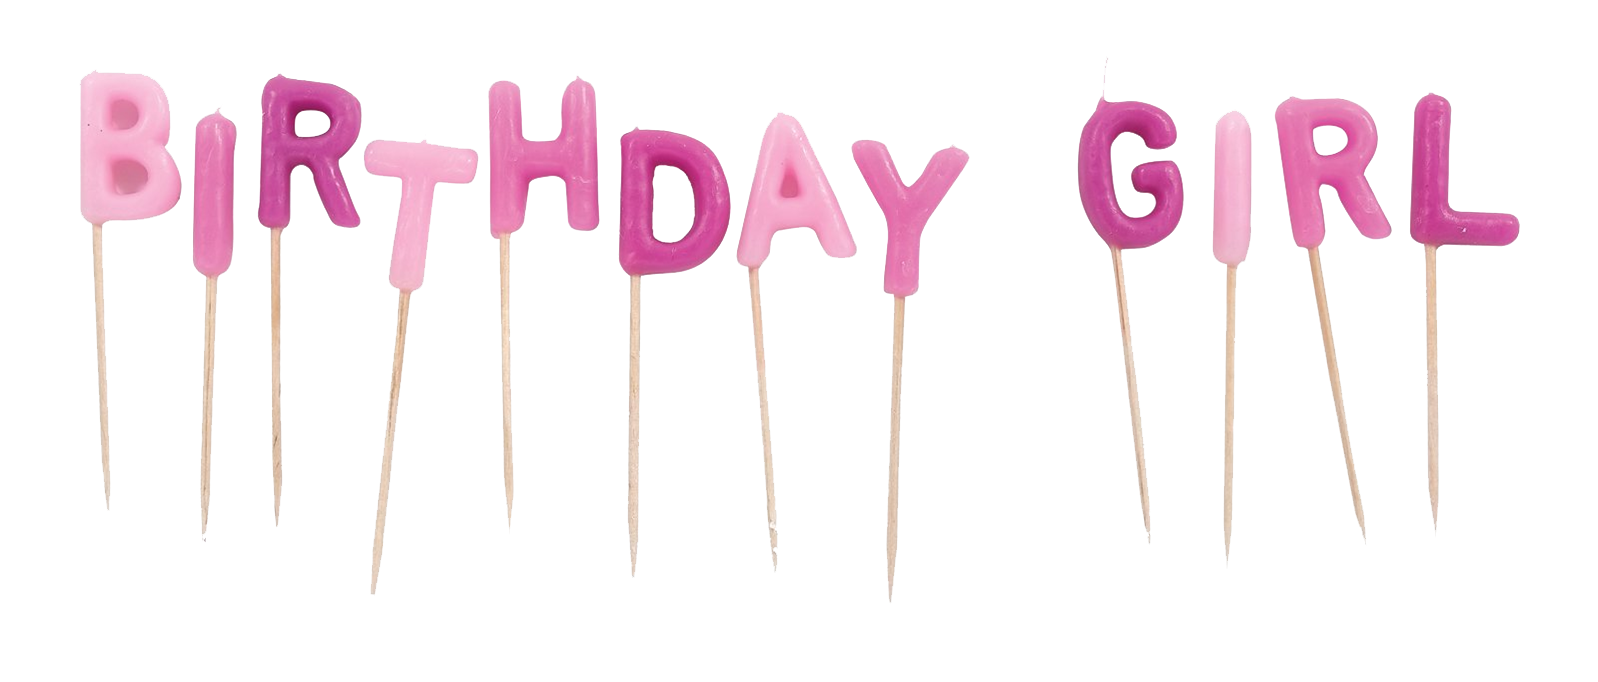 Happy 1st birthday girl clipart picture transparent stock Birthday Candles PNG Transparent Images | PNG All picture transparent stock